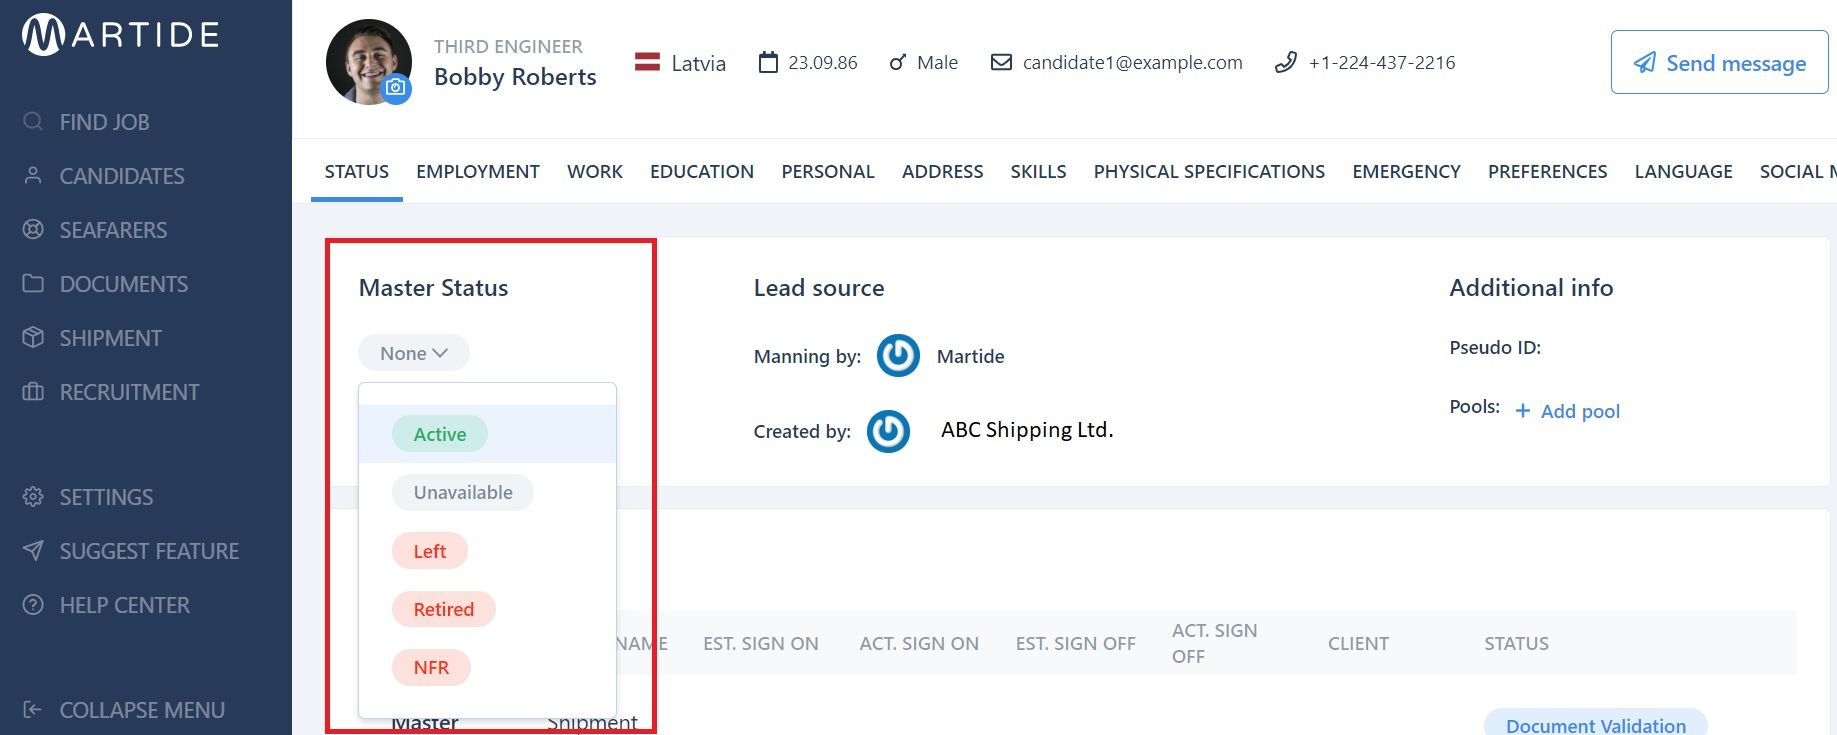 screenshot of Martide's maritime recruitment platform showing how to change the Master Status